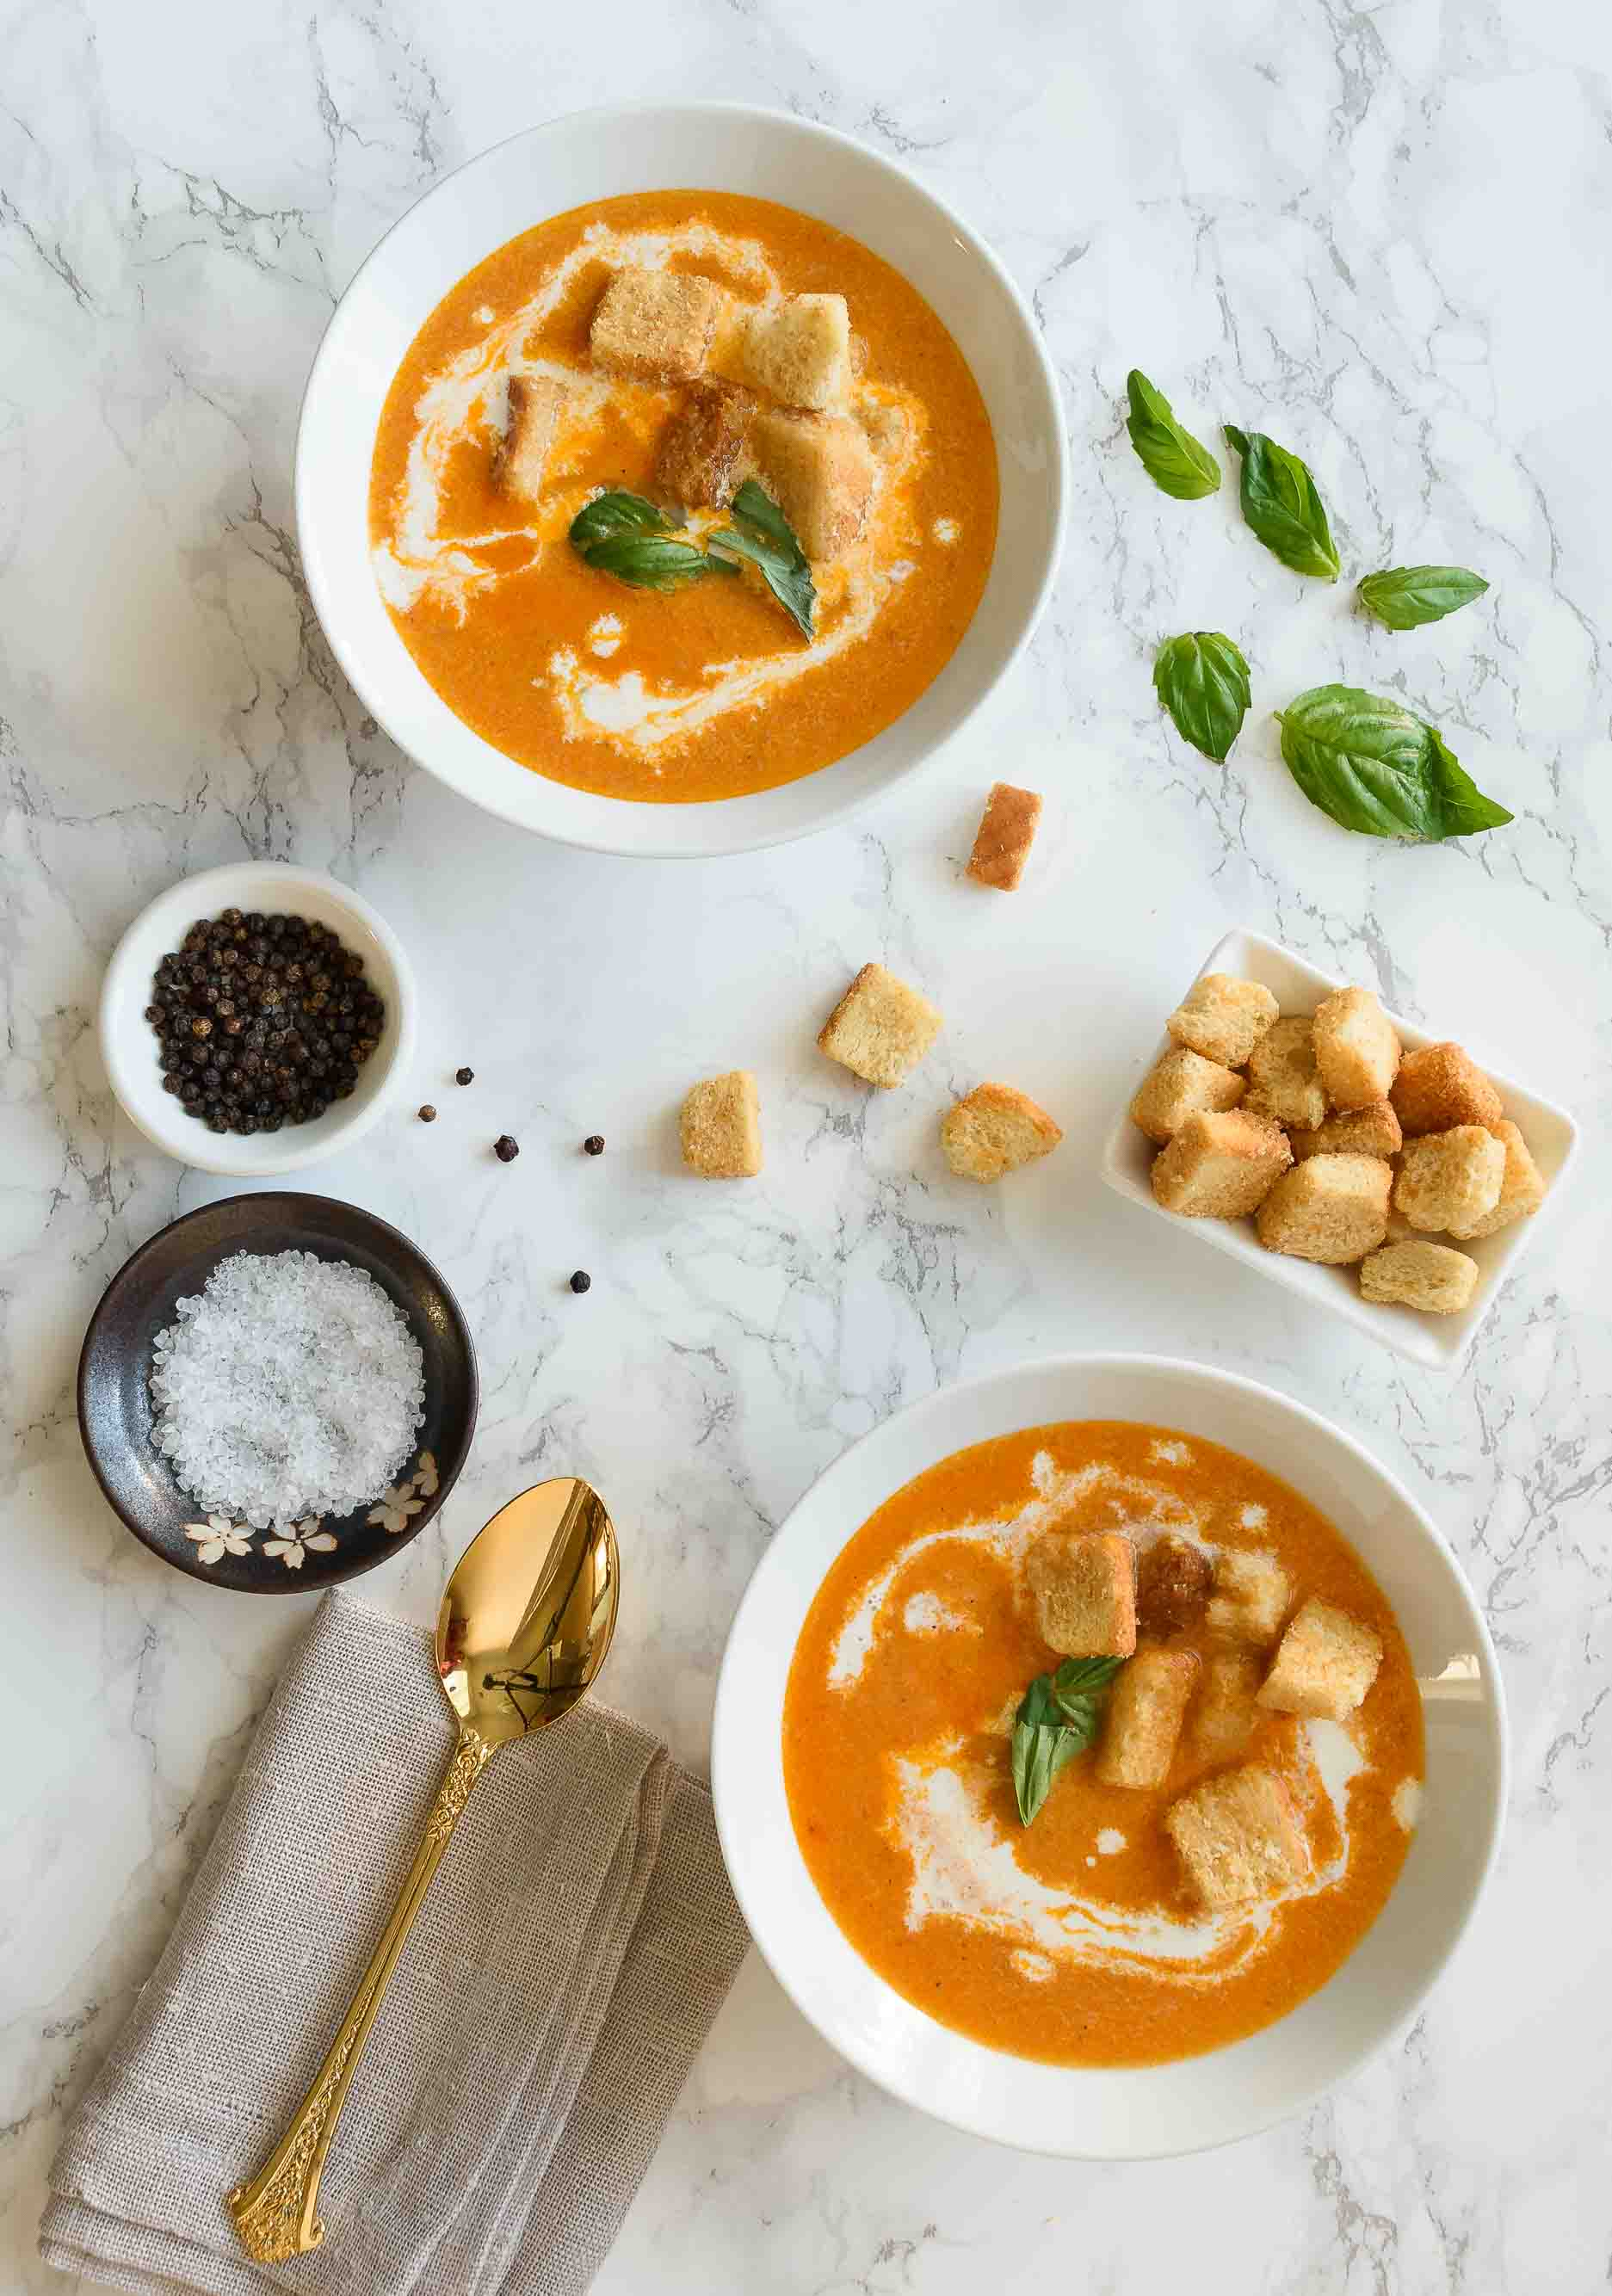 Creamy Roasted Tomato Soup - Pepper Delight #pepperdelightblog #recipe #soup #tomato #vegeterian #tomatosoup #summer #fall #healthy #cleaneating #creamysoup #roastedtomatosoup #wintersoup #appetizer #party #seasonal #lunch #basilsoup